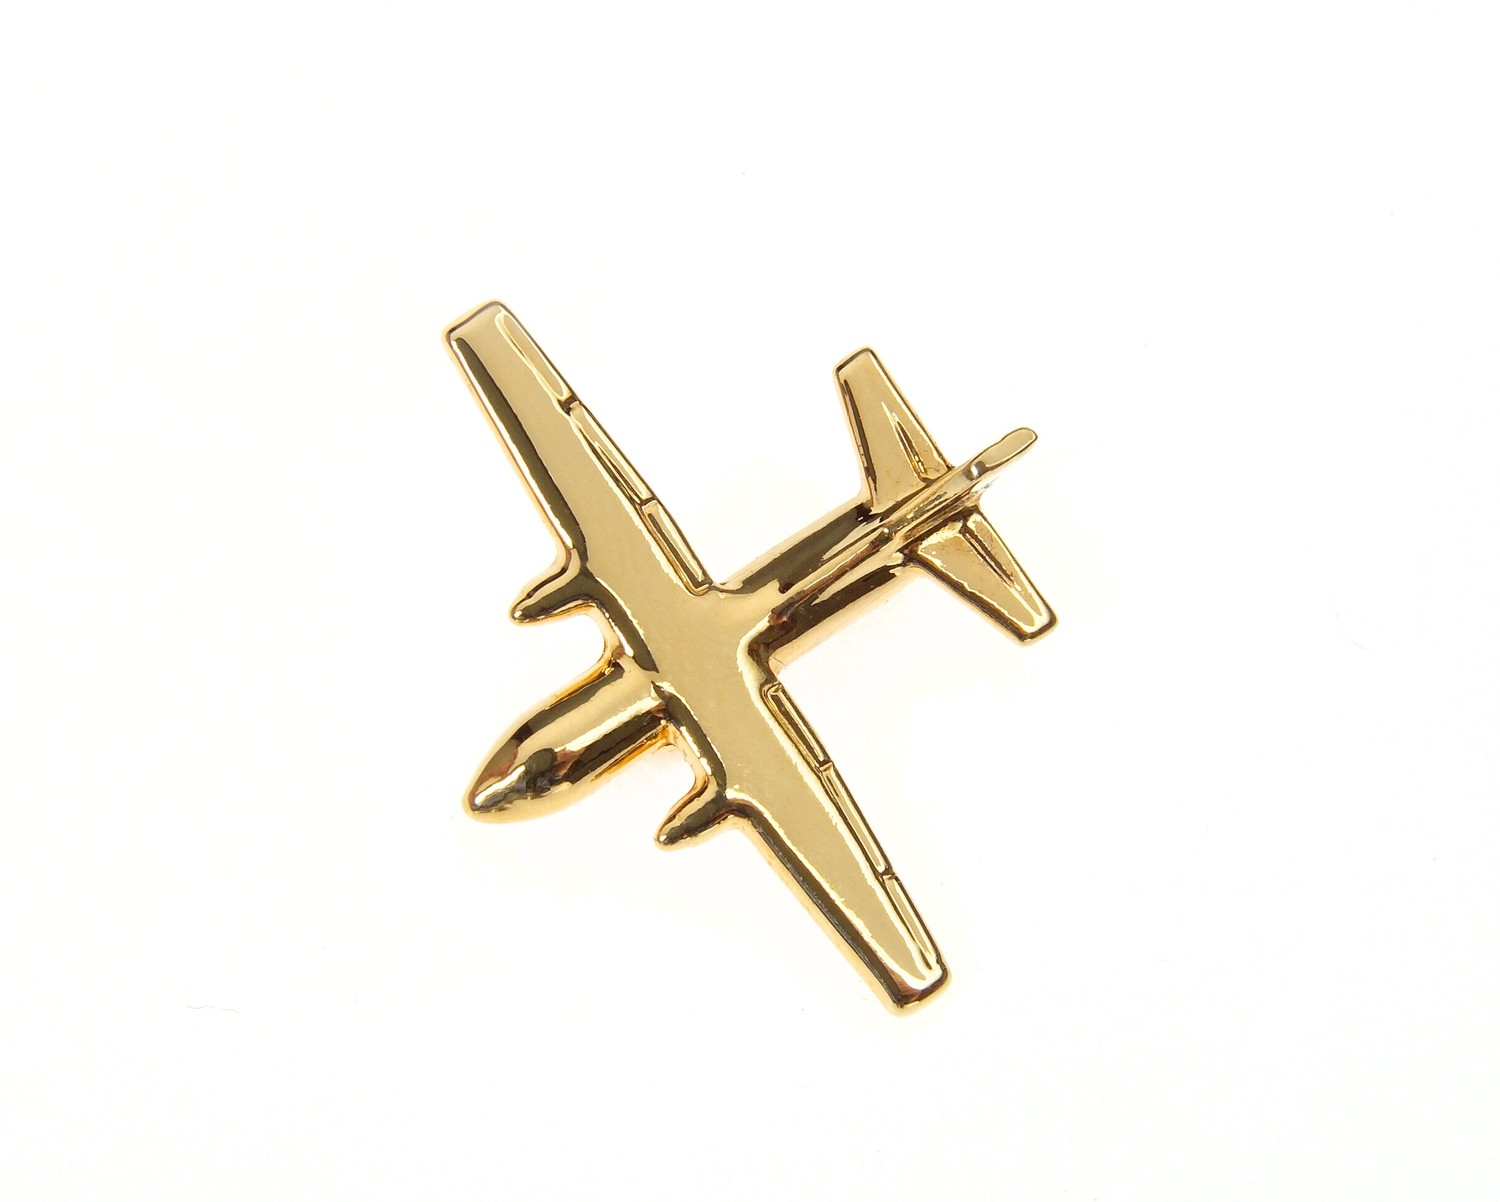 G222 Gold Plated Tie / Lapel Pin